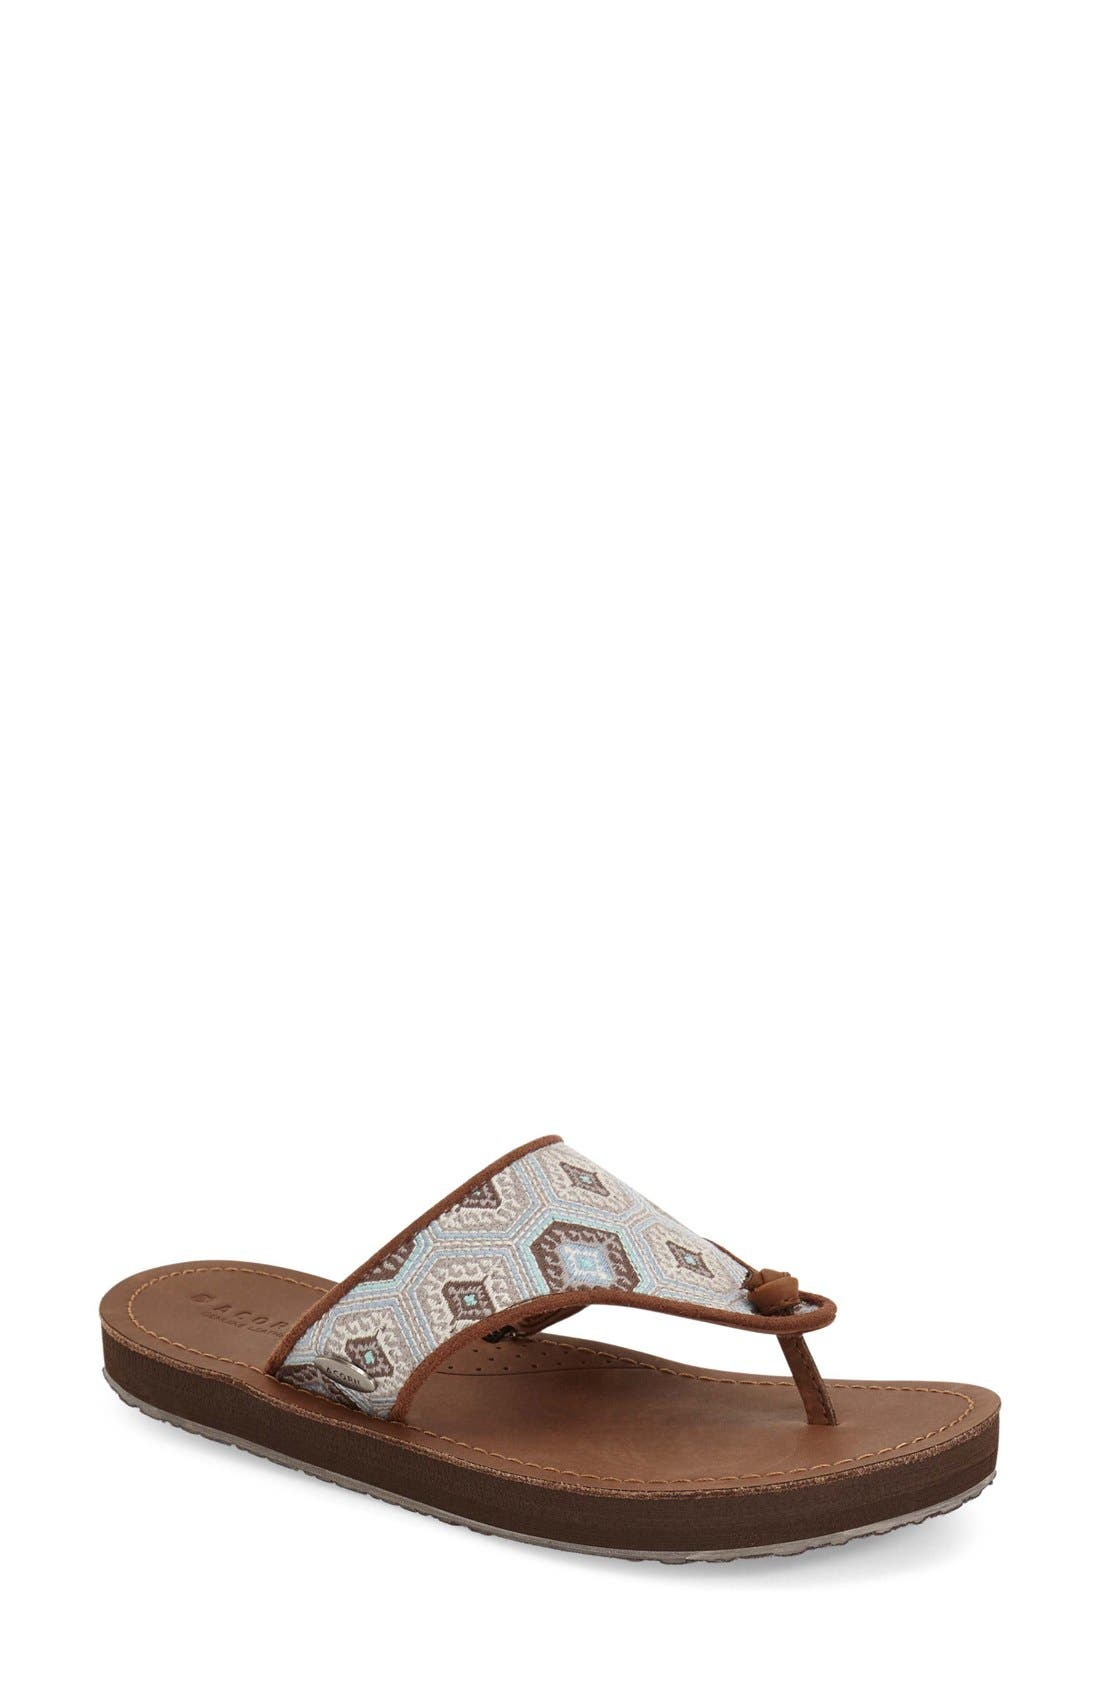 Acorn 'Artwalk' Flip Flop (Women)